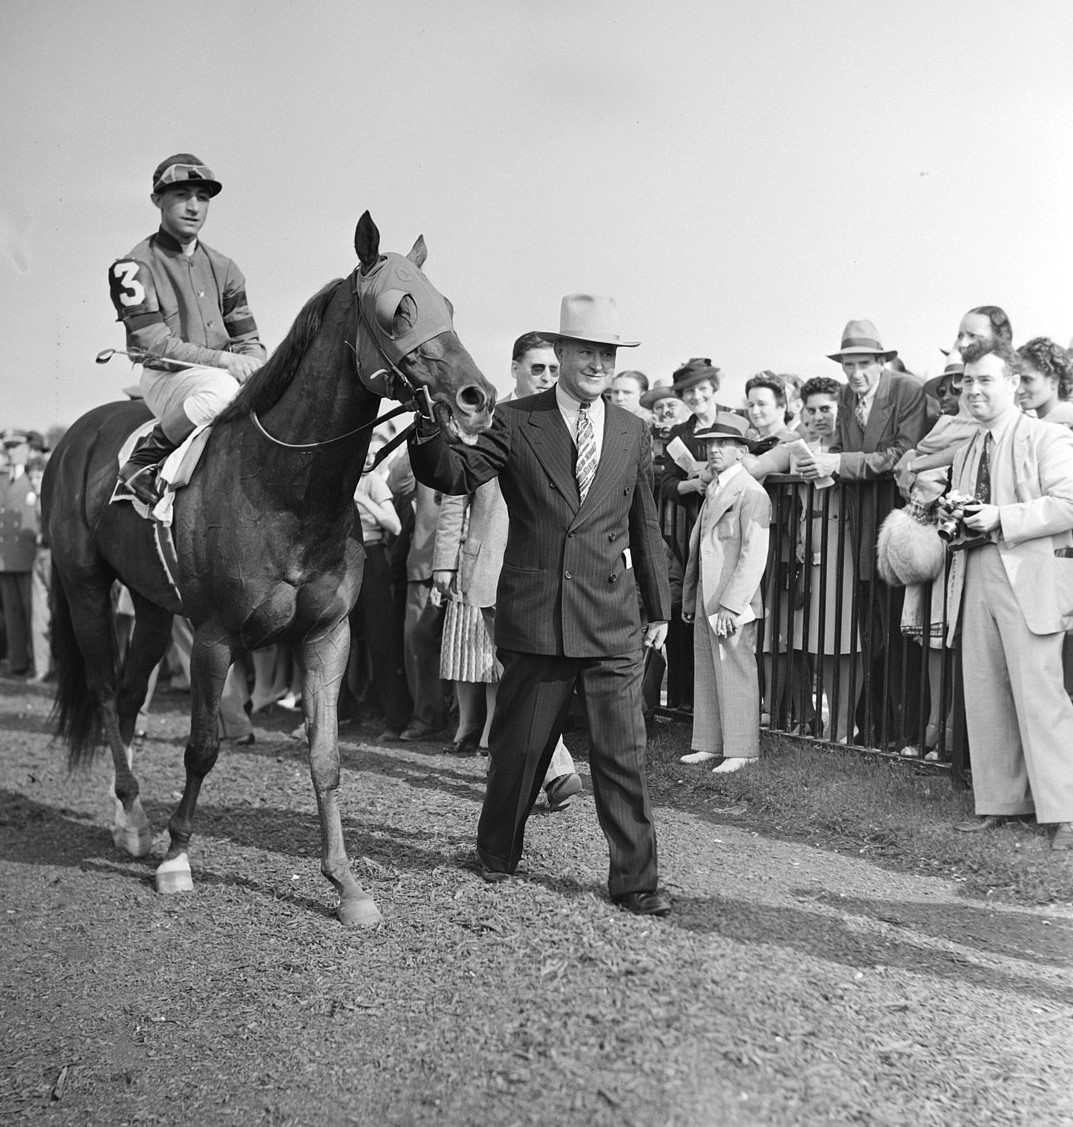 Eddie Arcaro on Whirlaway with Horace A. Jimmy Jones after winning the Belmont Stakes